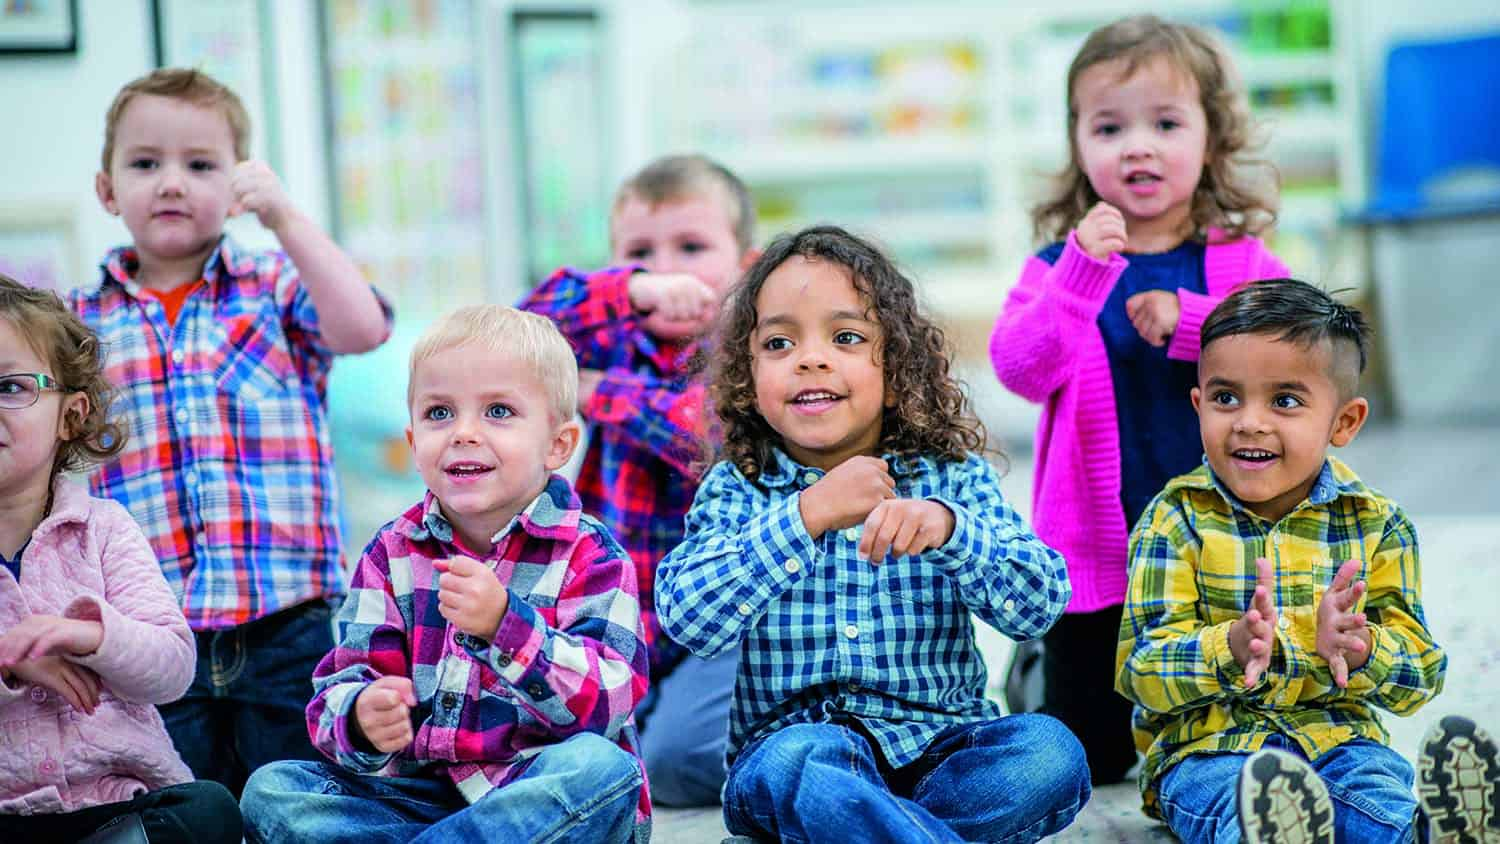 A multi-ethnic group of young children are at a preschool. They are sitting on the carpet and doing various motions to a song.